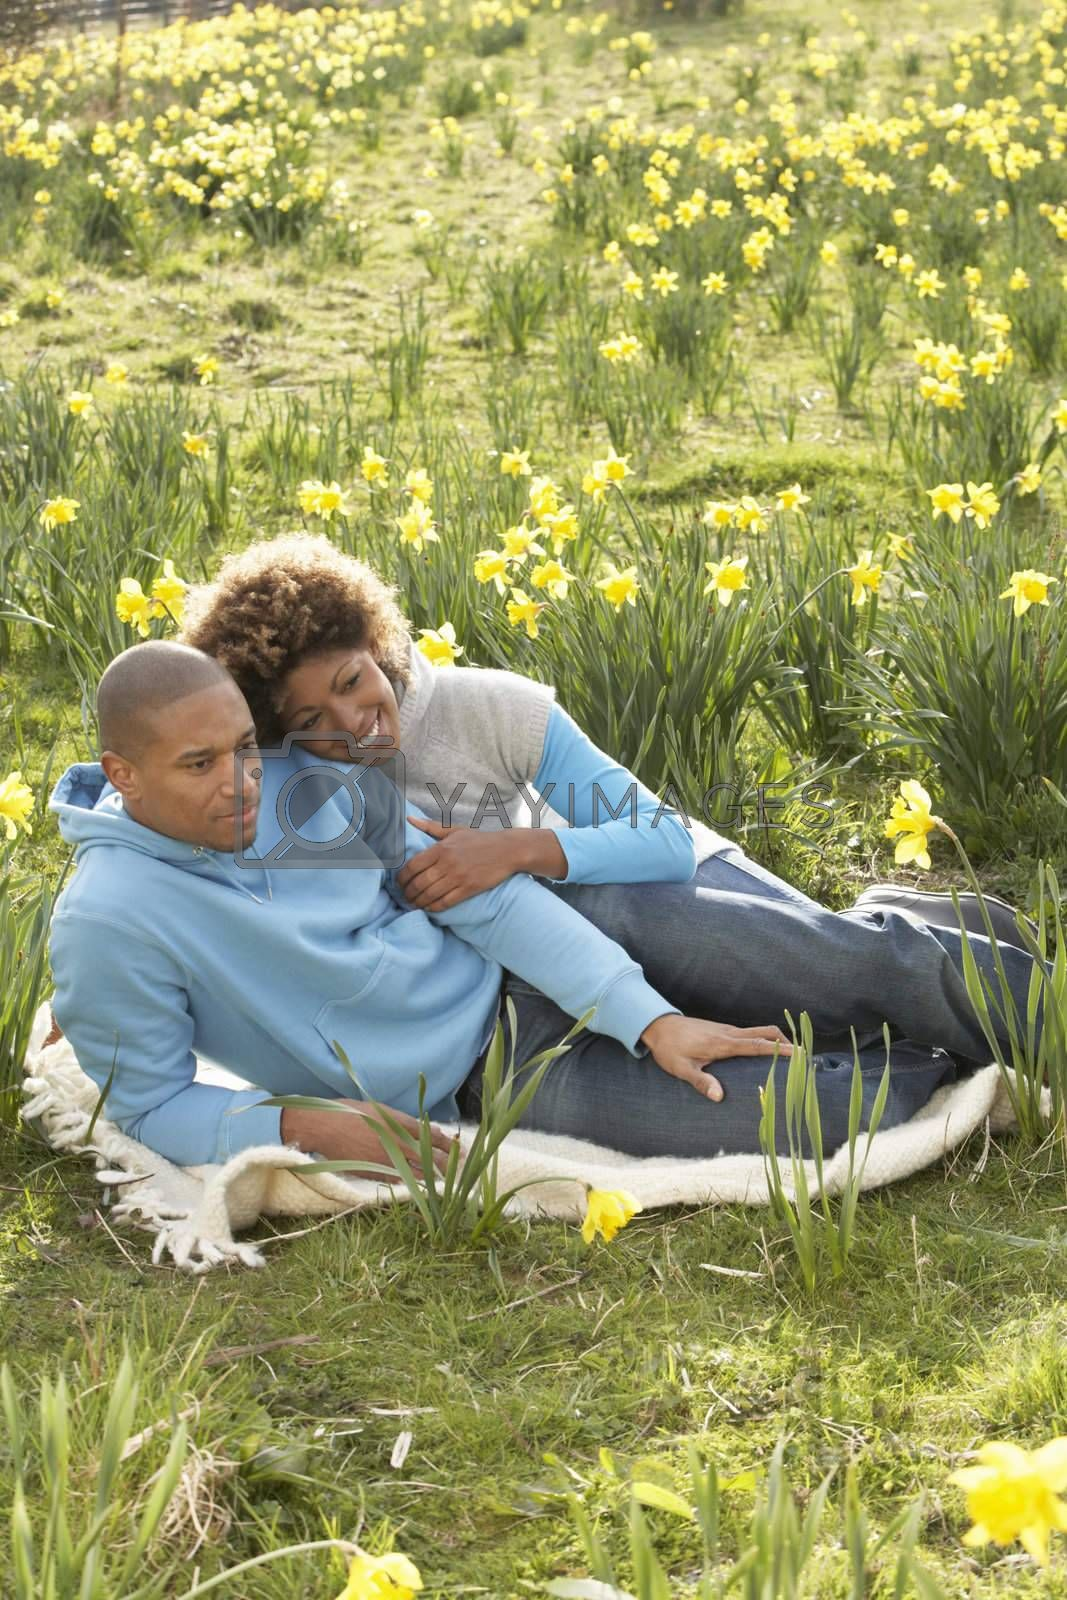 Couple Relaxing In Field Of Spring Daffodils by OMG Images